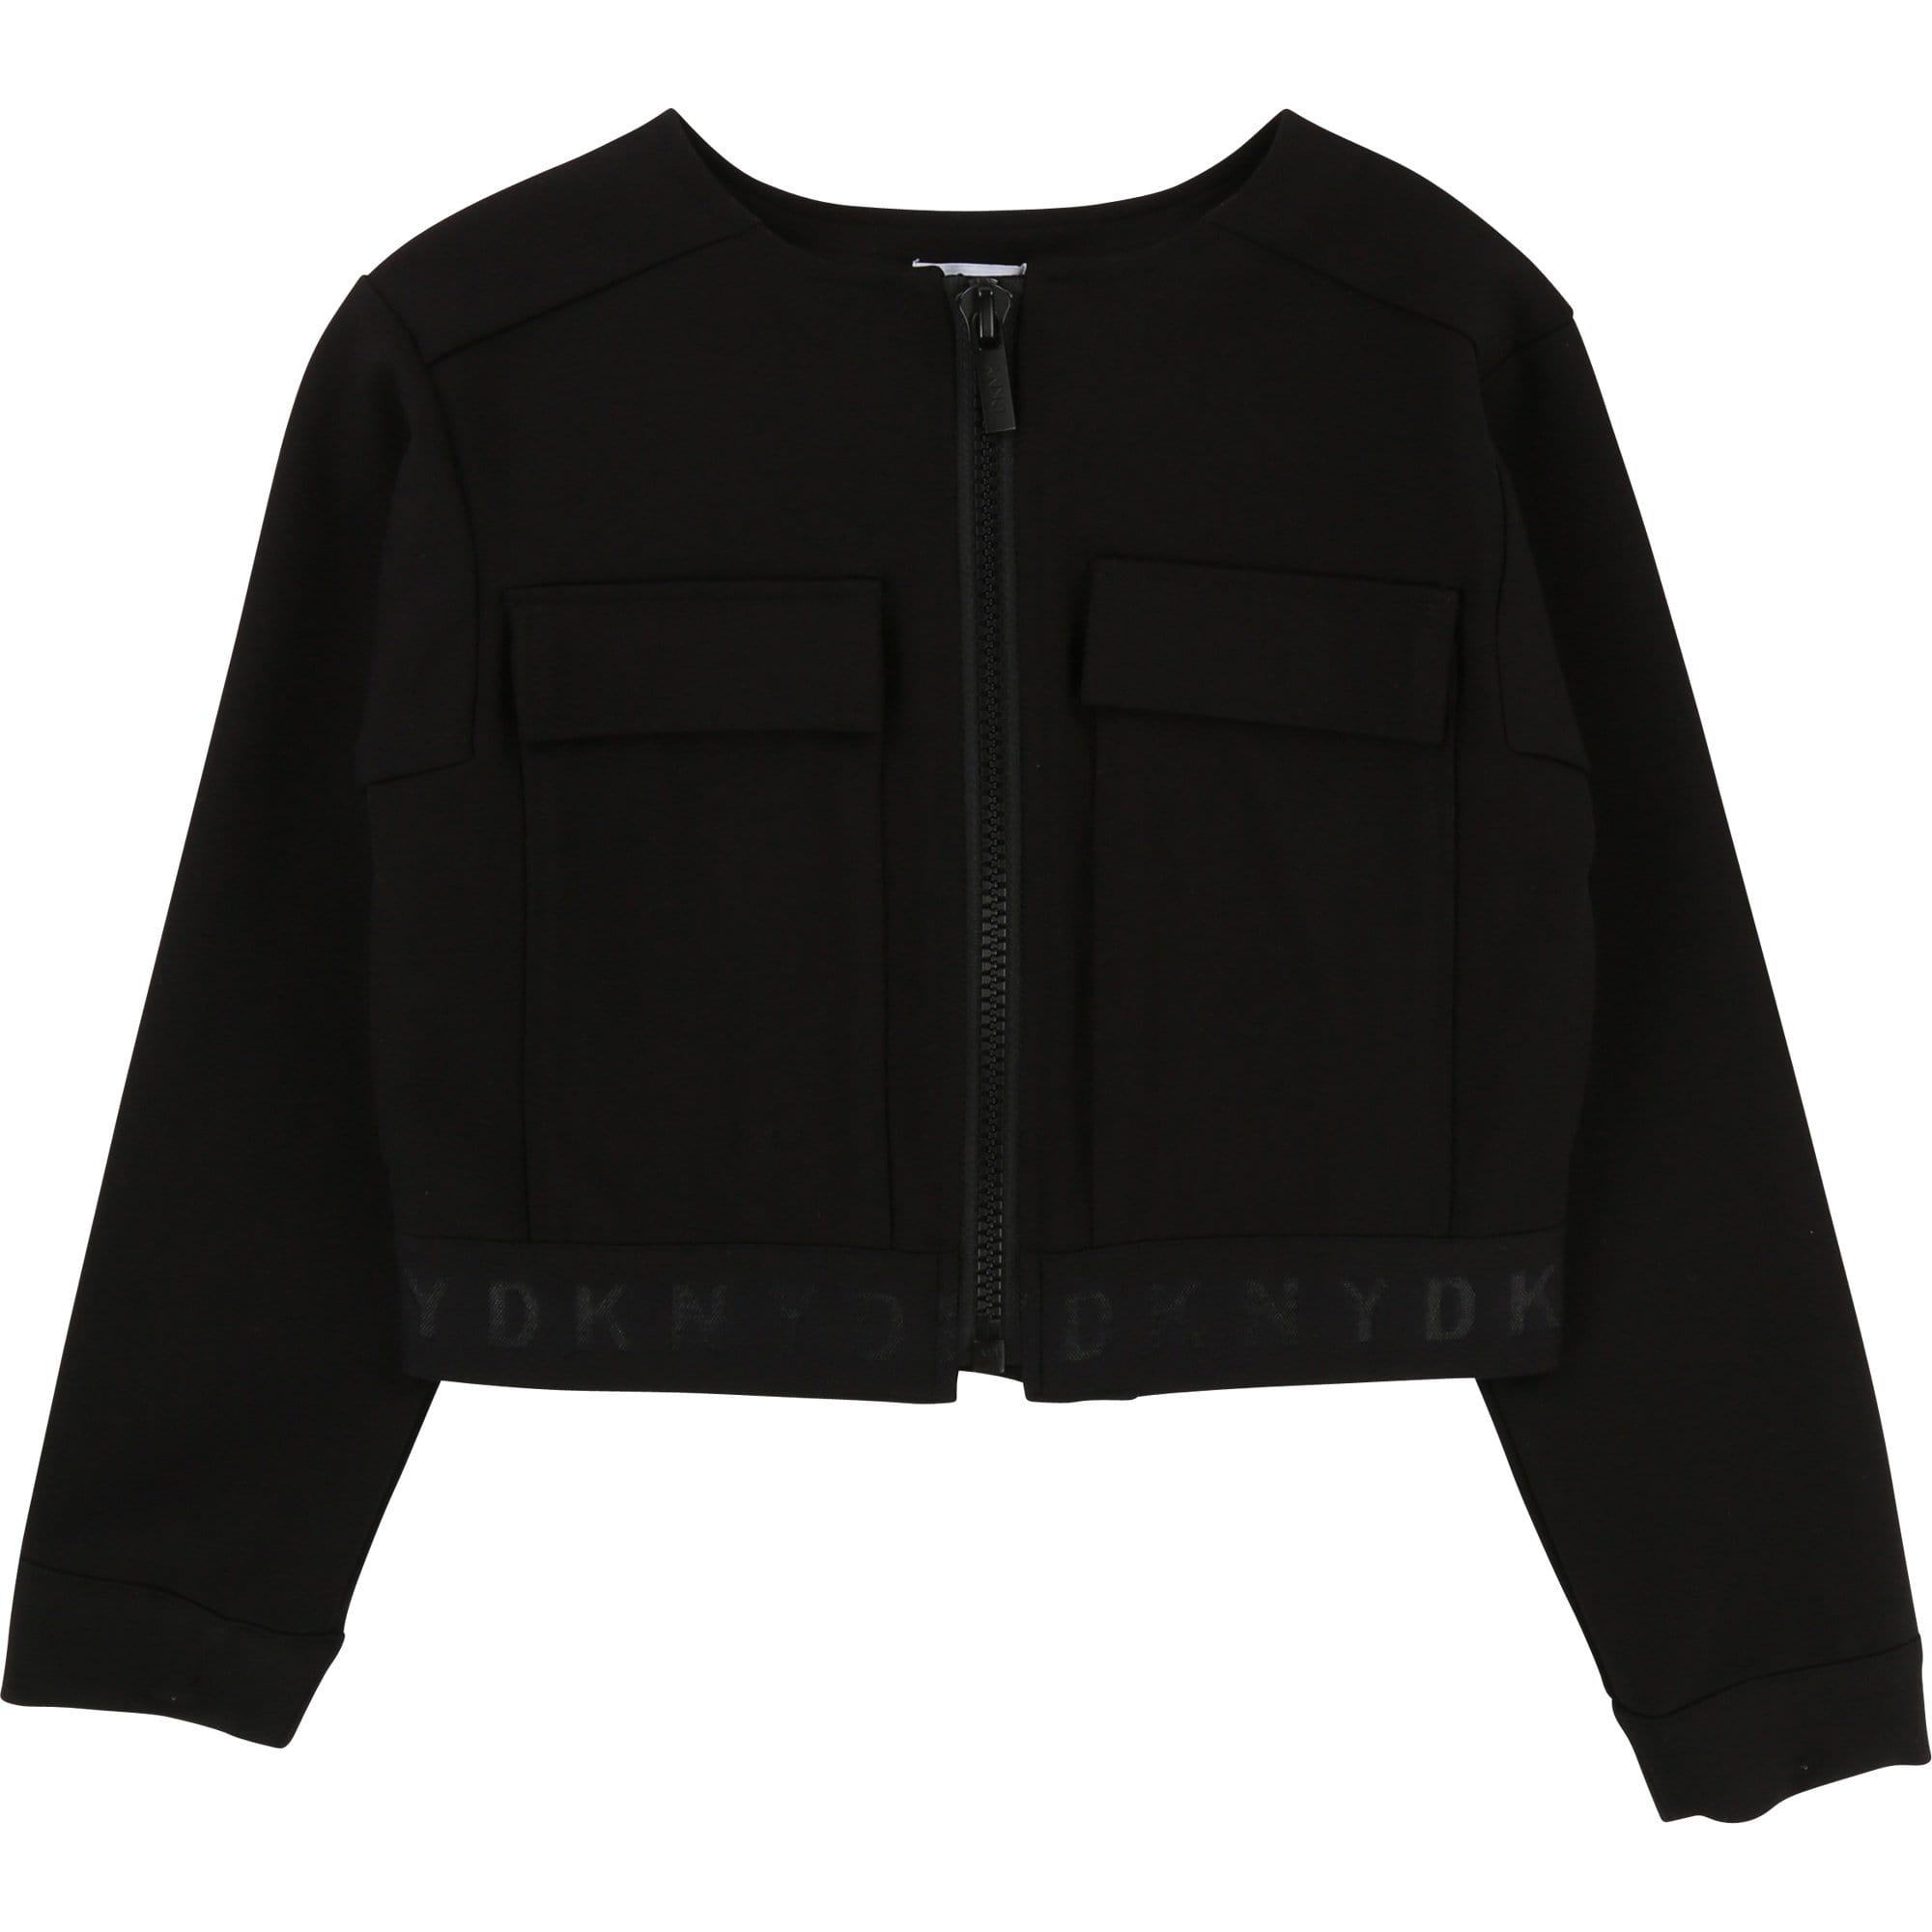 DKNY Girls Black Jacket (4716867780739)